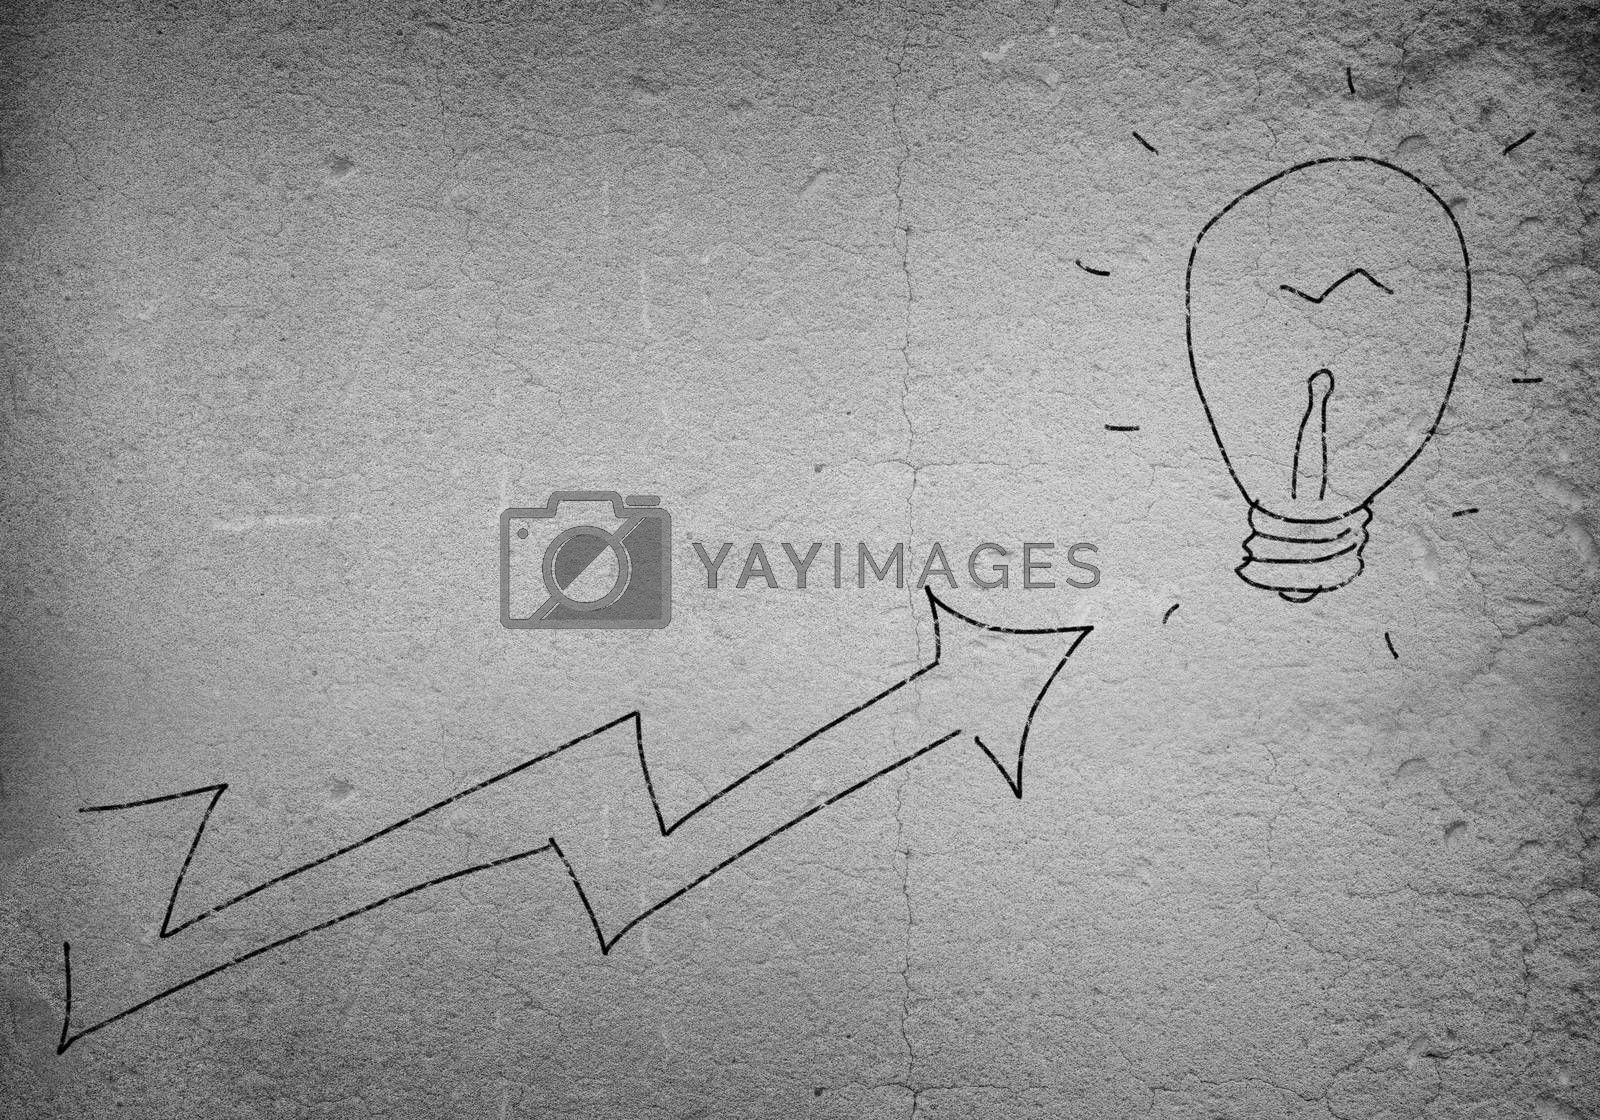 Background image with drawn arrow on cement wall